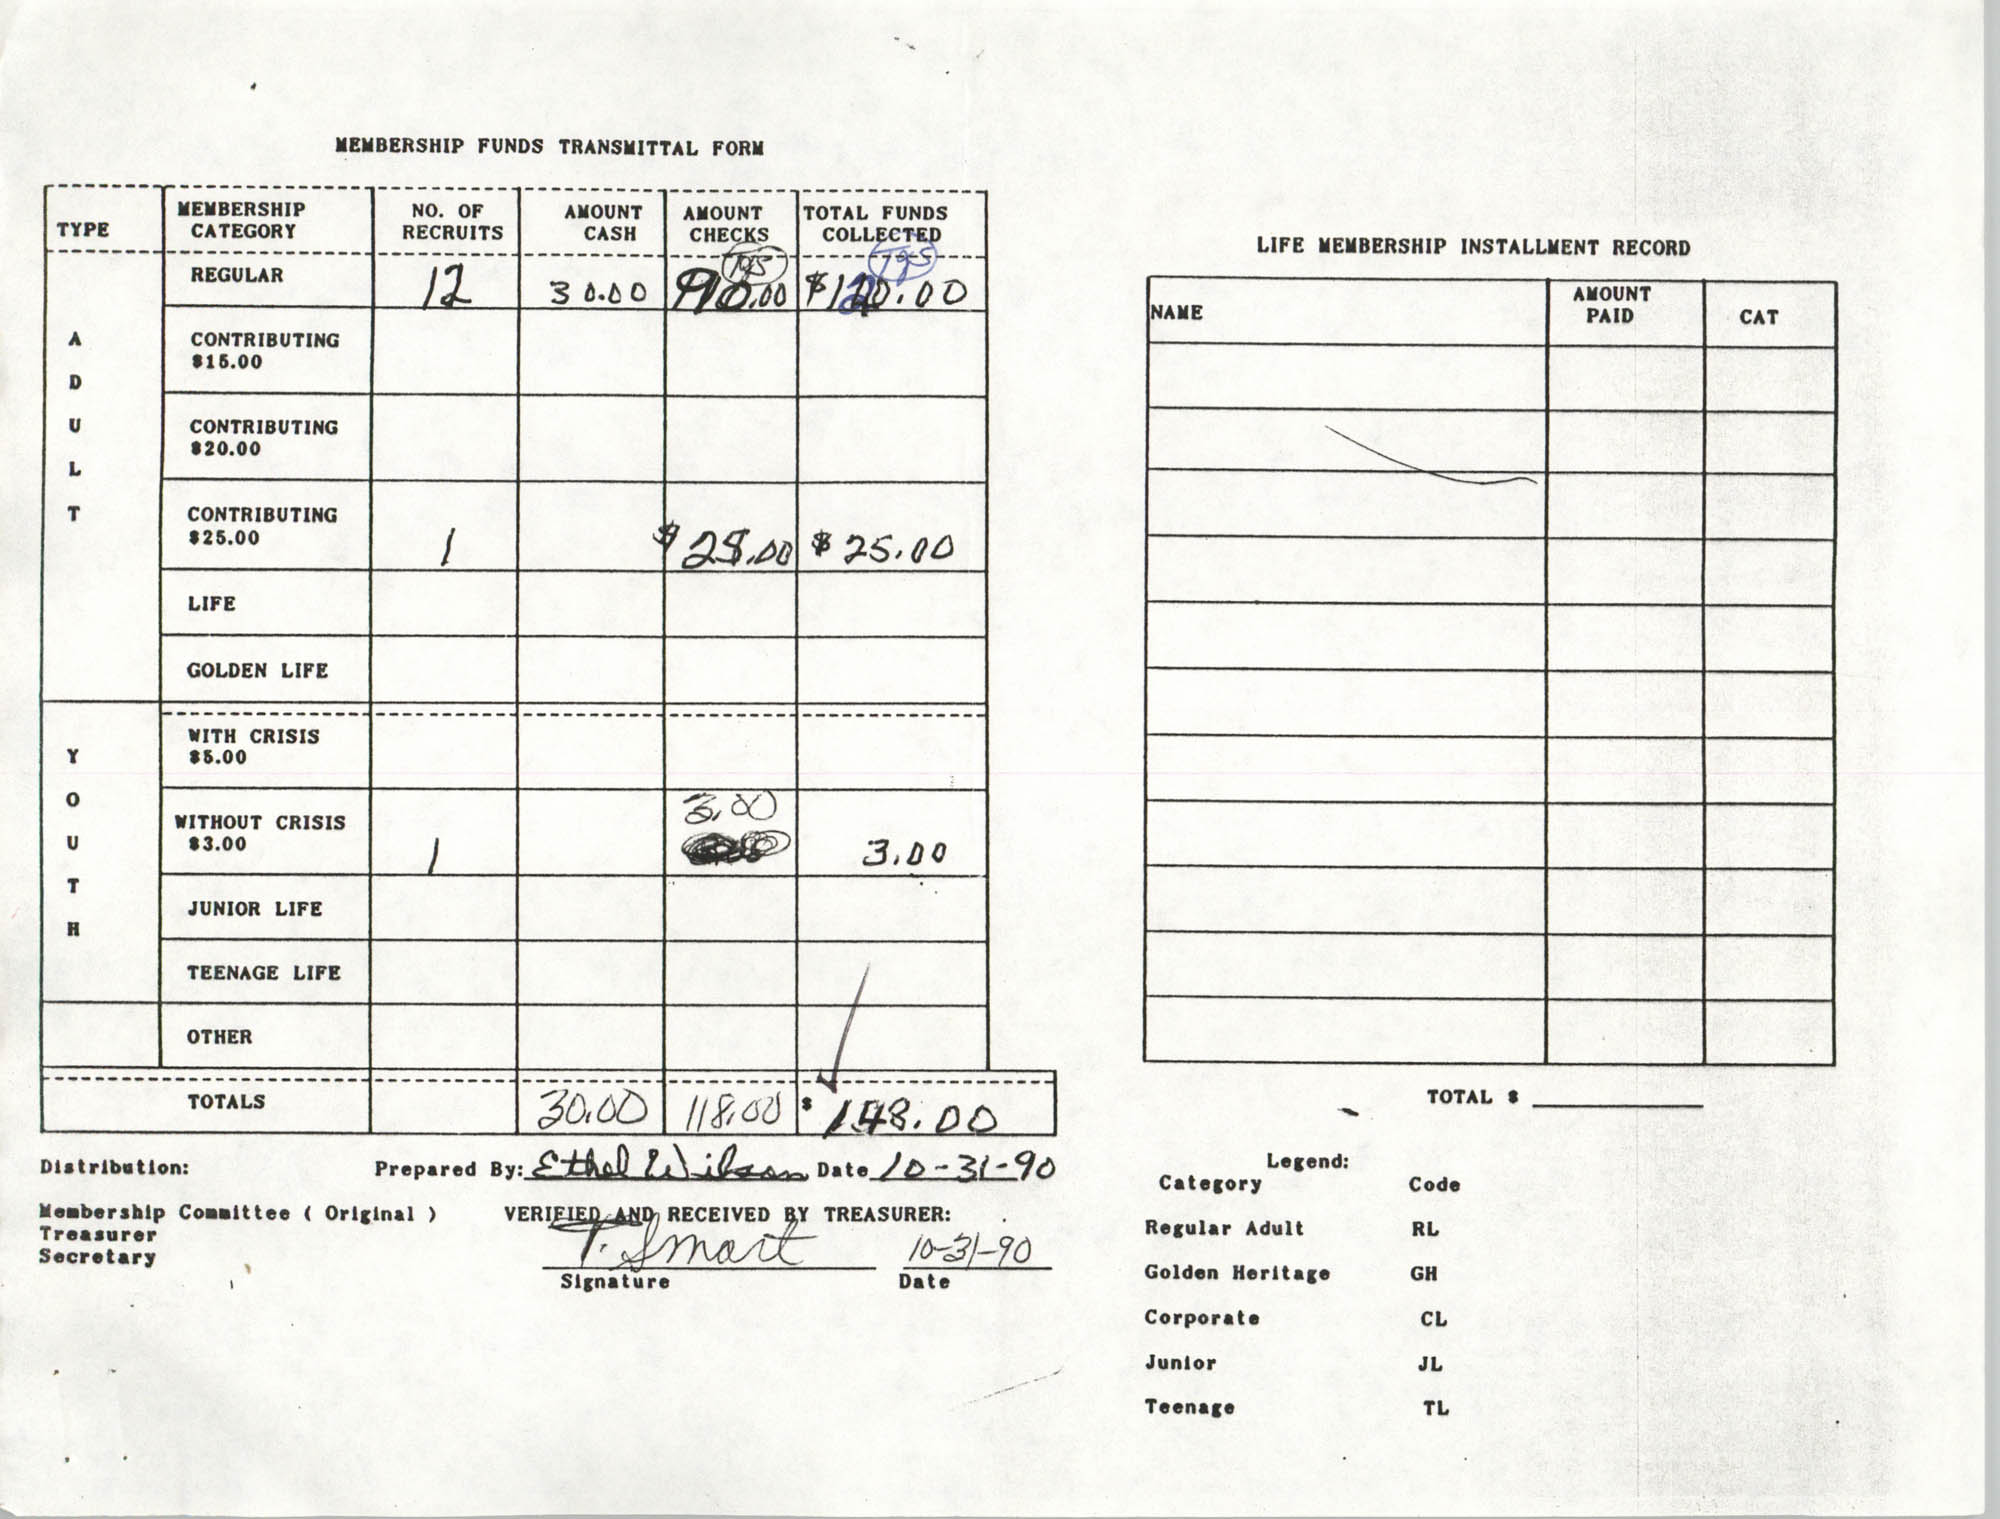 Charleston Branch of the NAACP Funds Transmittal Forms, November 1990, Page 1